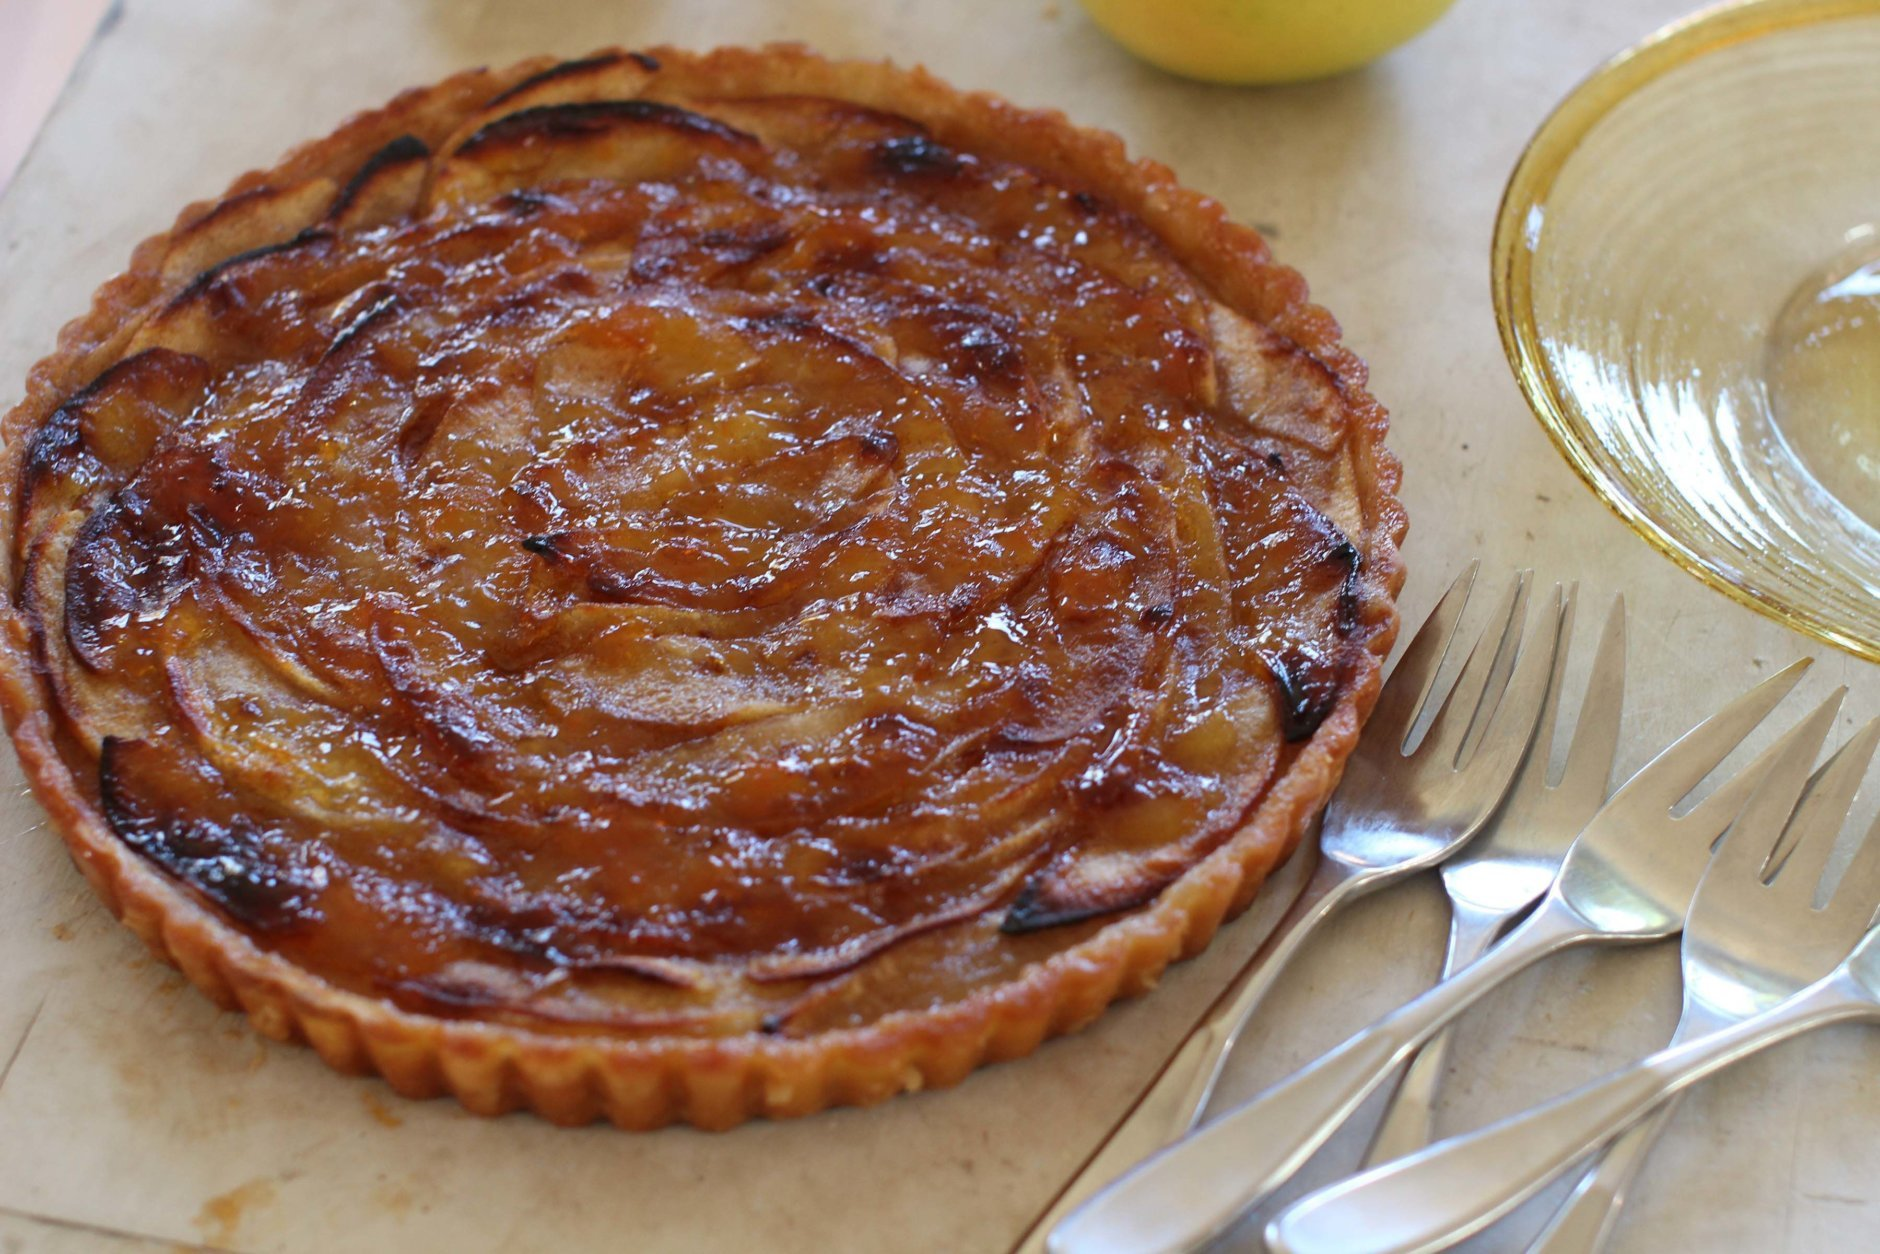 This October 19, 2015 photo shows apple tart with cinnamon creme fraiche in Concord, NH. When you add a little sugar and cinnamon to creme fraiche, it turns this tart into something that feels restaurant-fancy. (AP Photo/Matthew Mead)